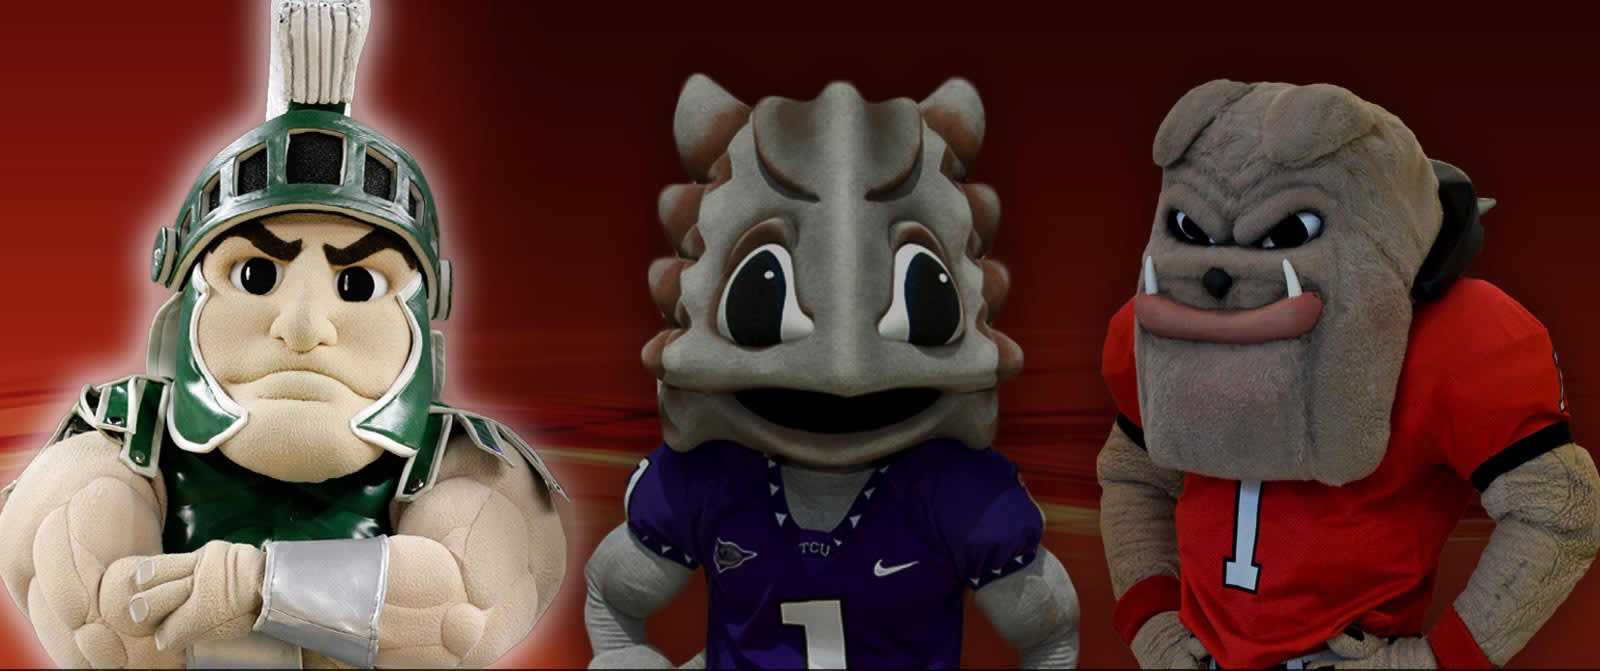 Image of three college mascots, with the far left and legendary mascot highlighted